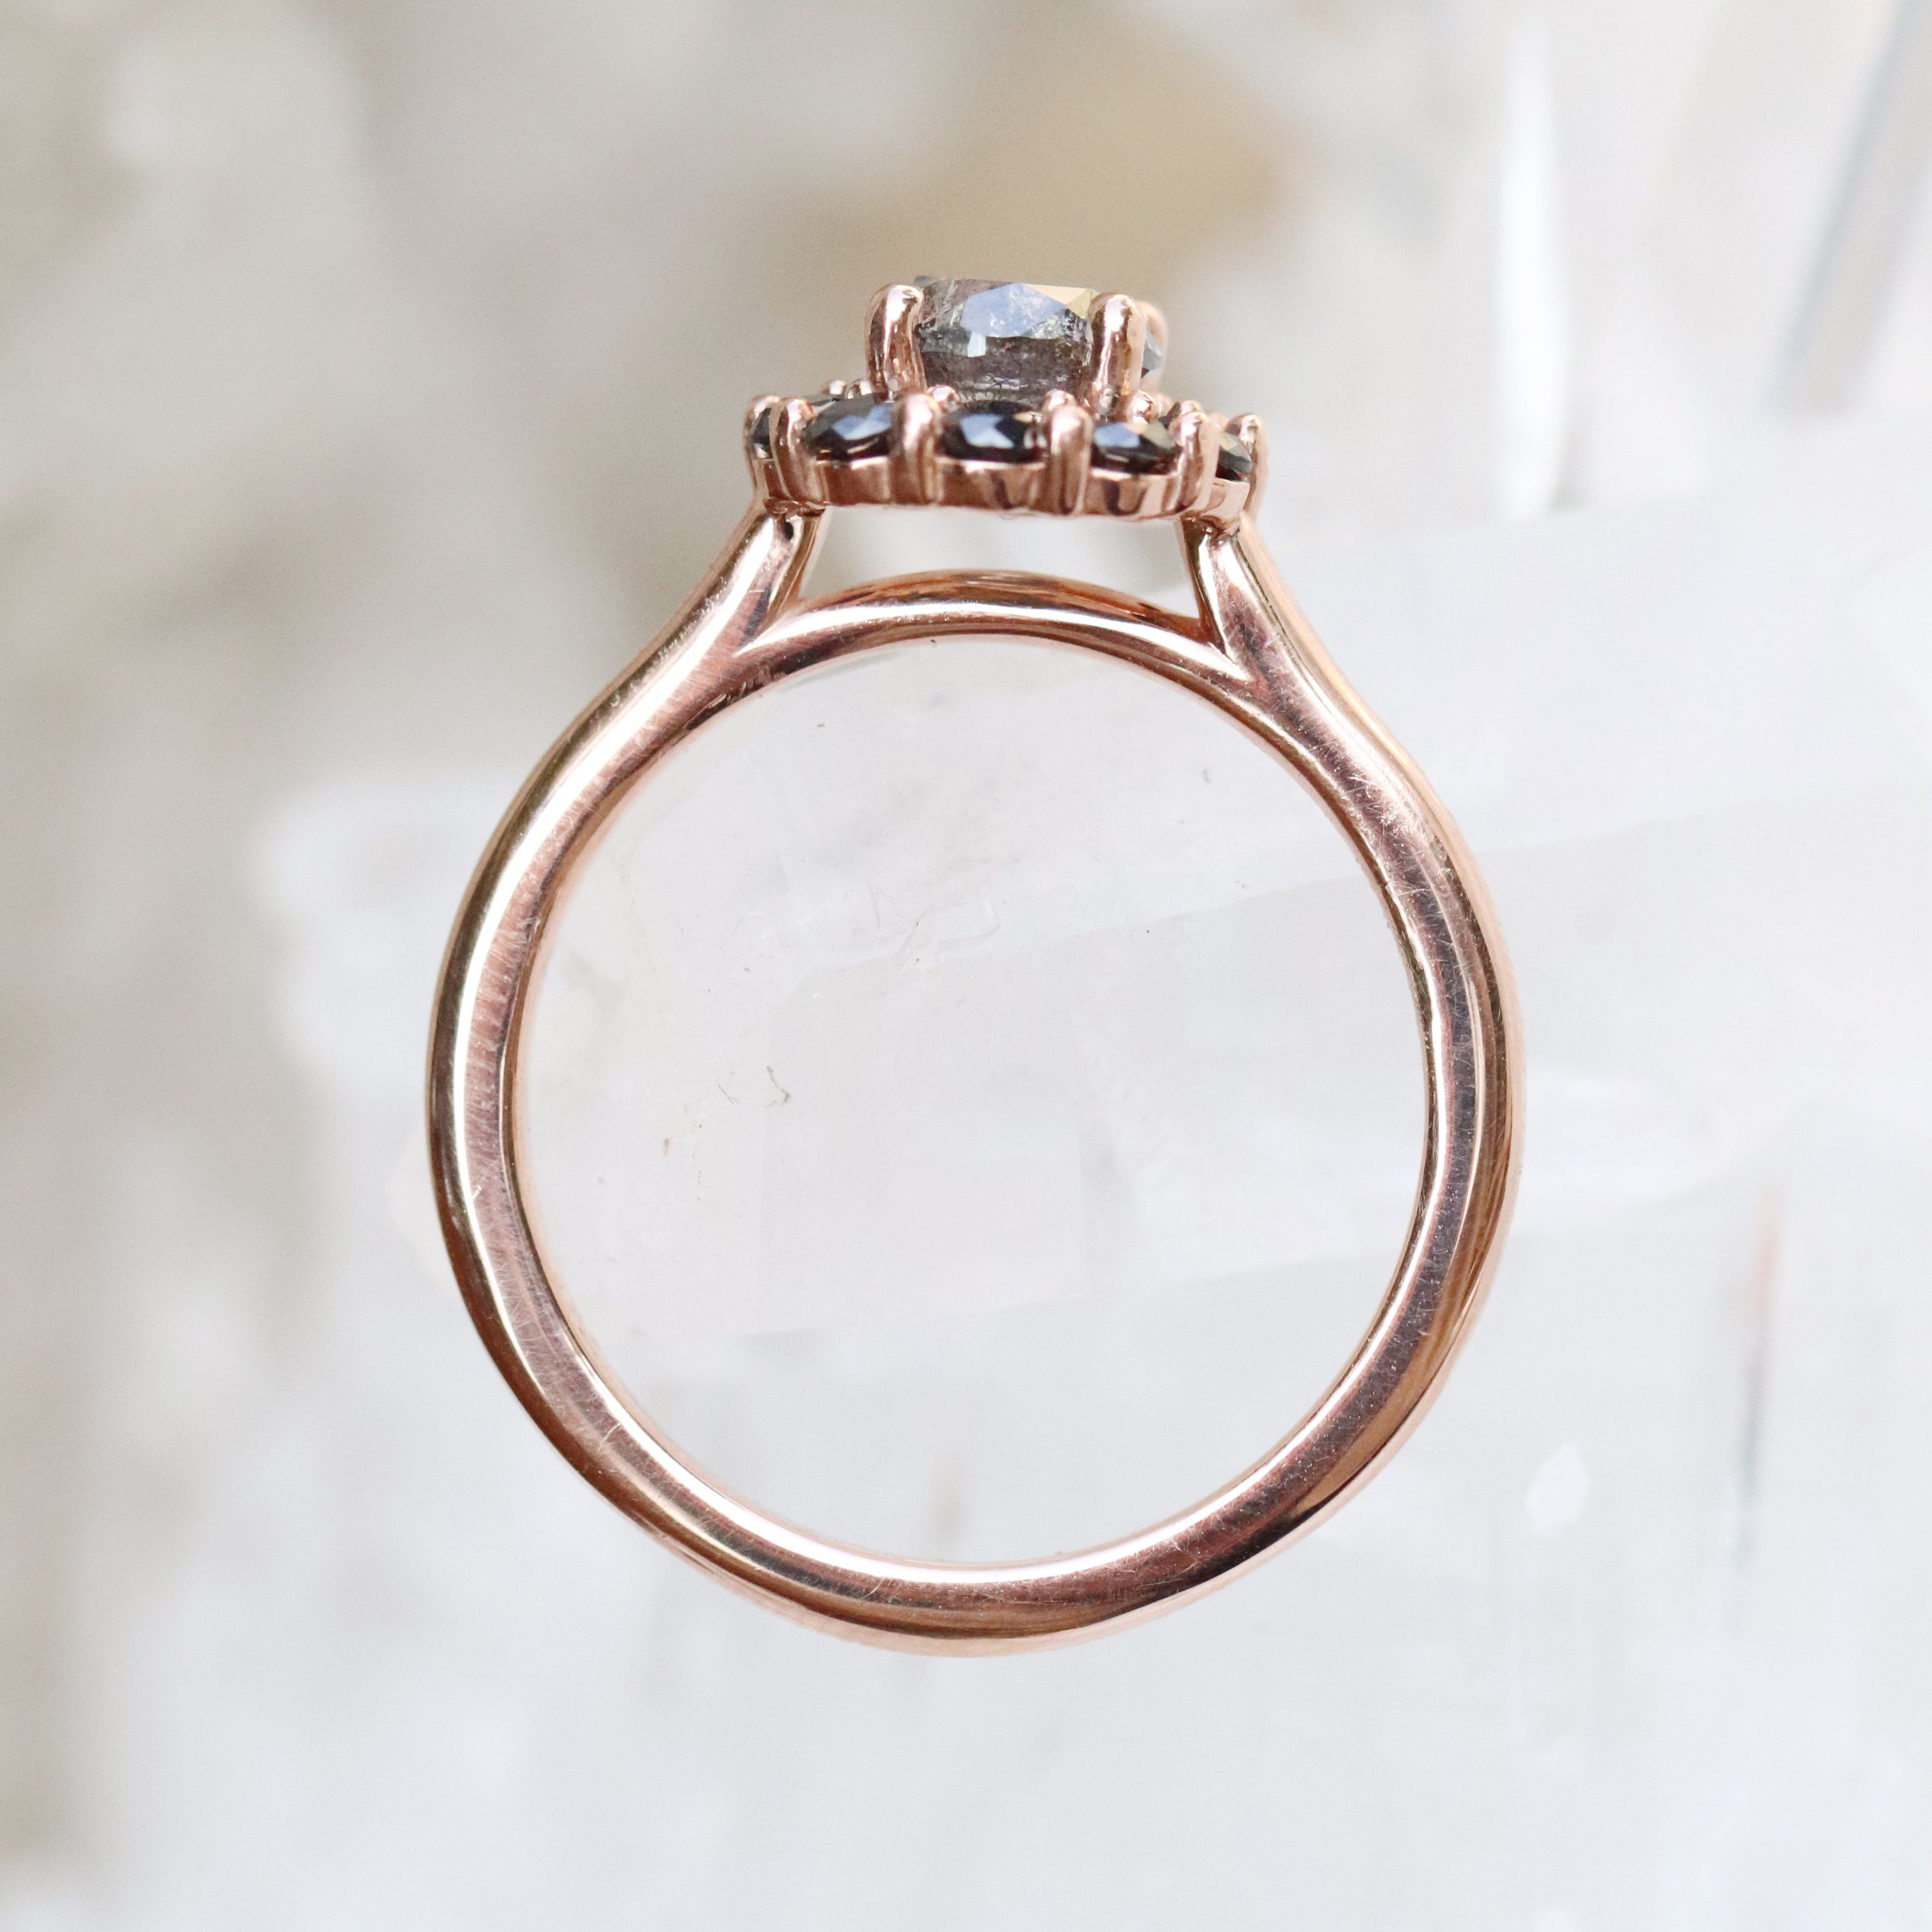 Magnolia Ring with a 1.02 Celestial Diamond and Black Diamond Accents in 14k Rose Gold - Ready to Size and Ship - Salt & Pepper Celestial Diamond Engagement Rings and Wedding Bands  by Midwinter Co.